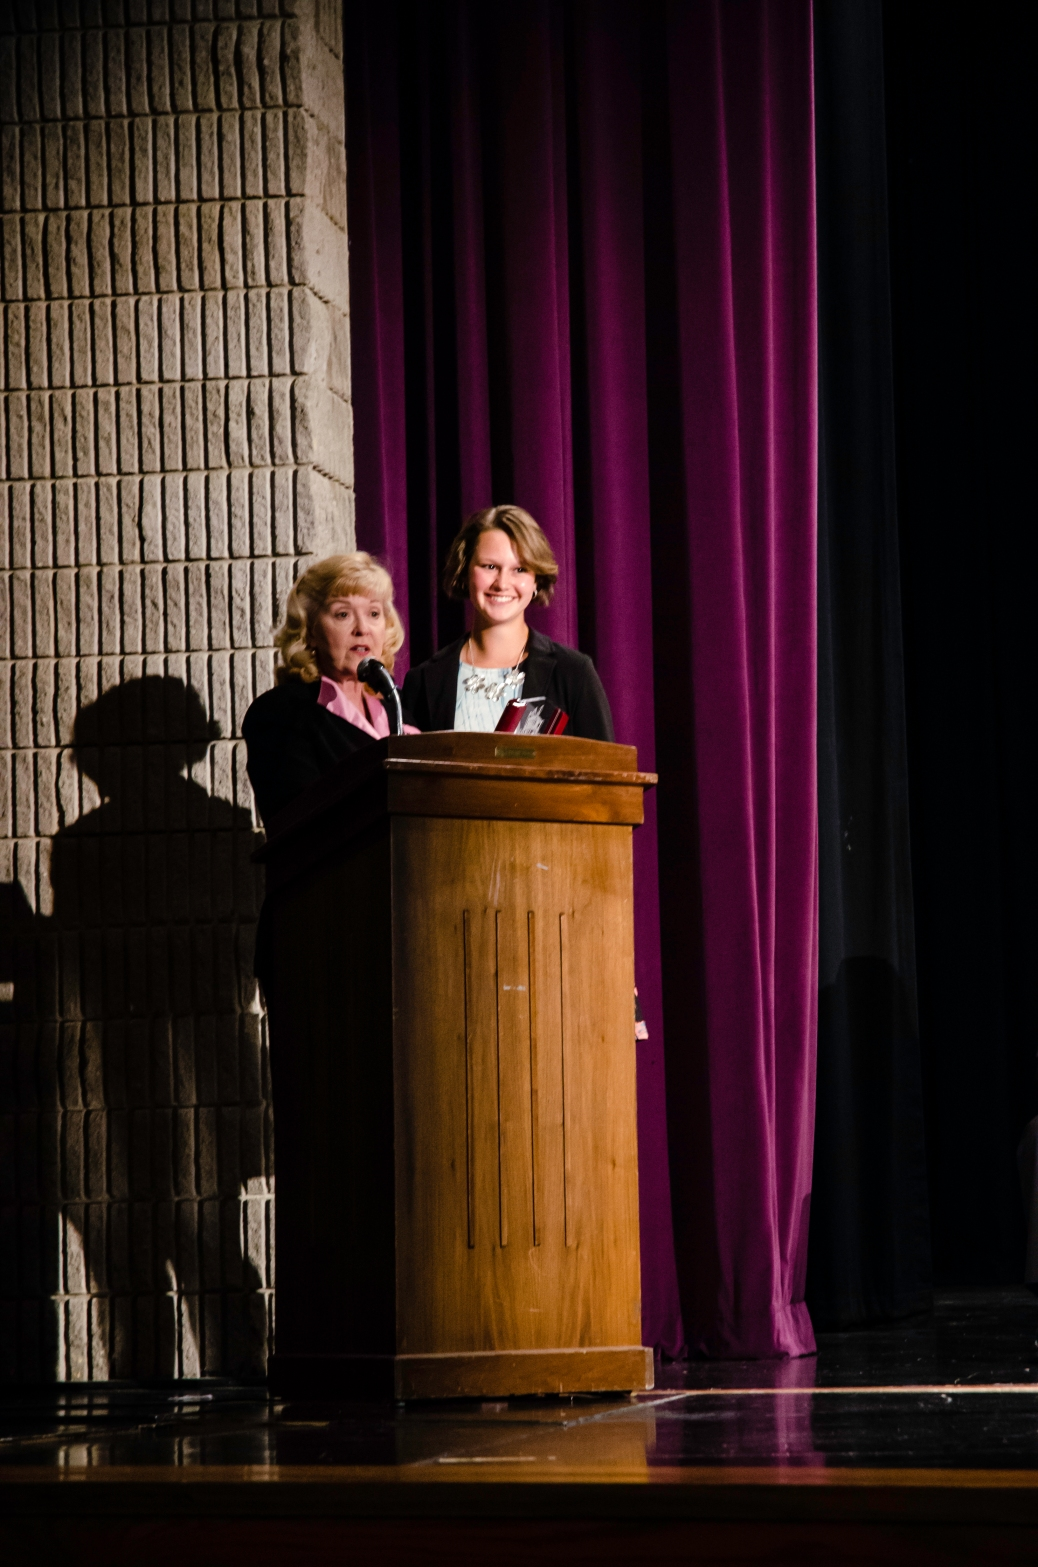 Principal Janie Whaley and senior Erin Patterson stand at the podium smiling after Whaley announces that Patterson is Ms. Floyd Central for the class of 2015. Photo by Robert Wormley.